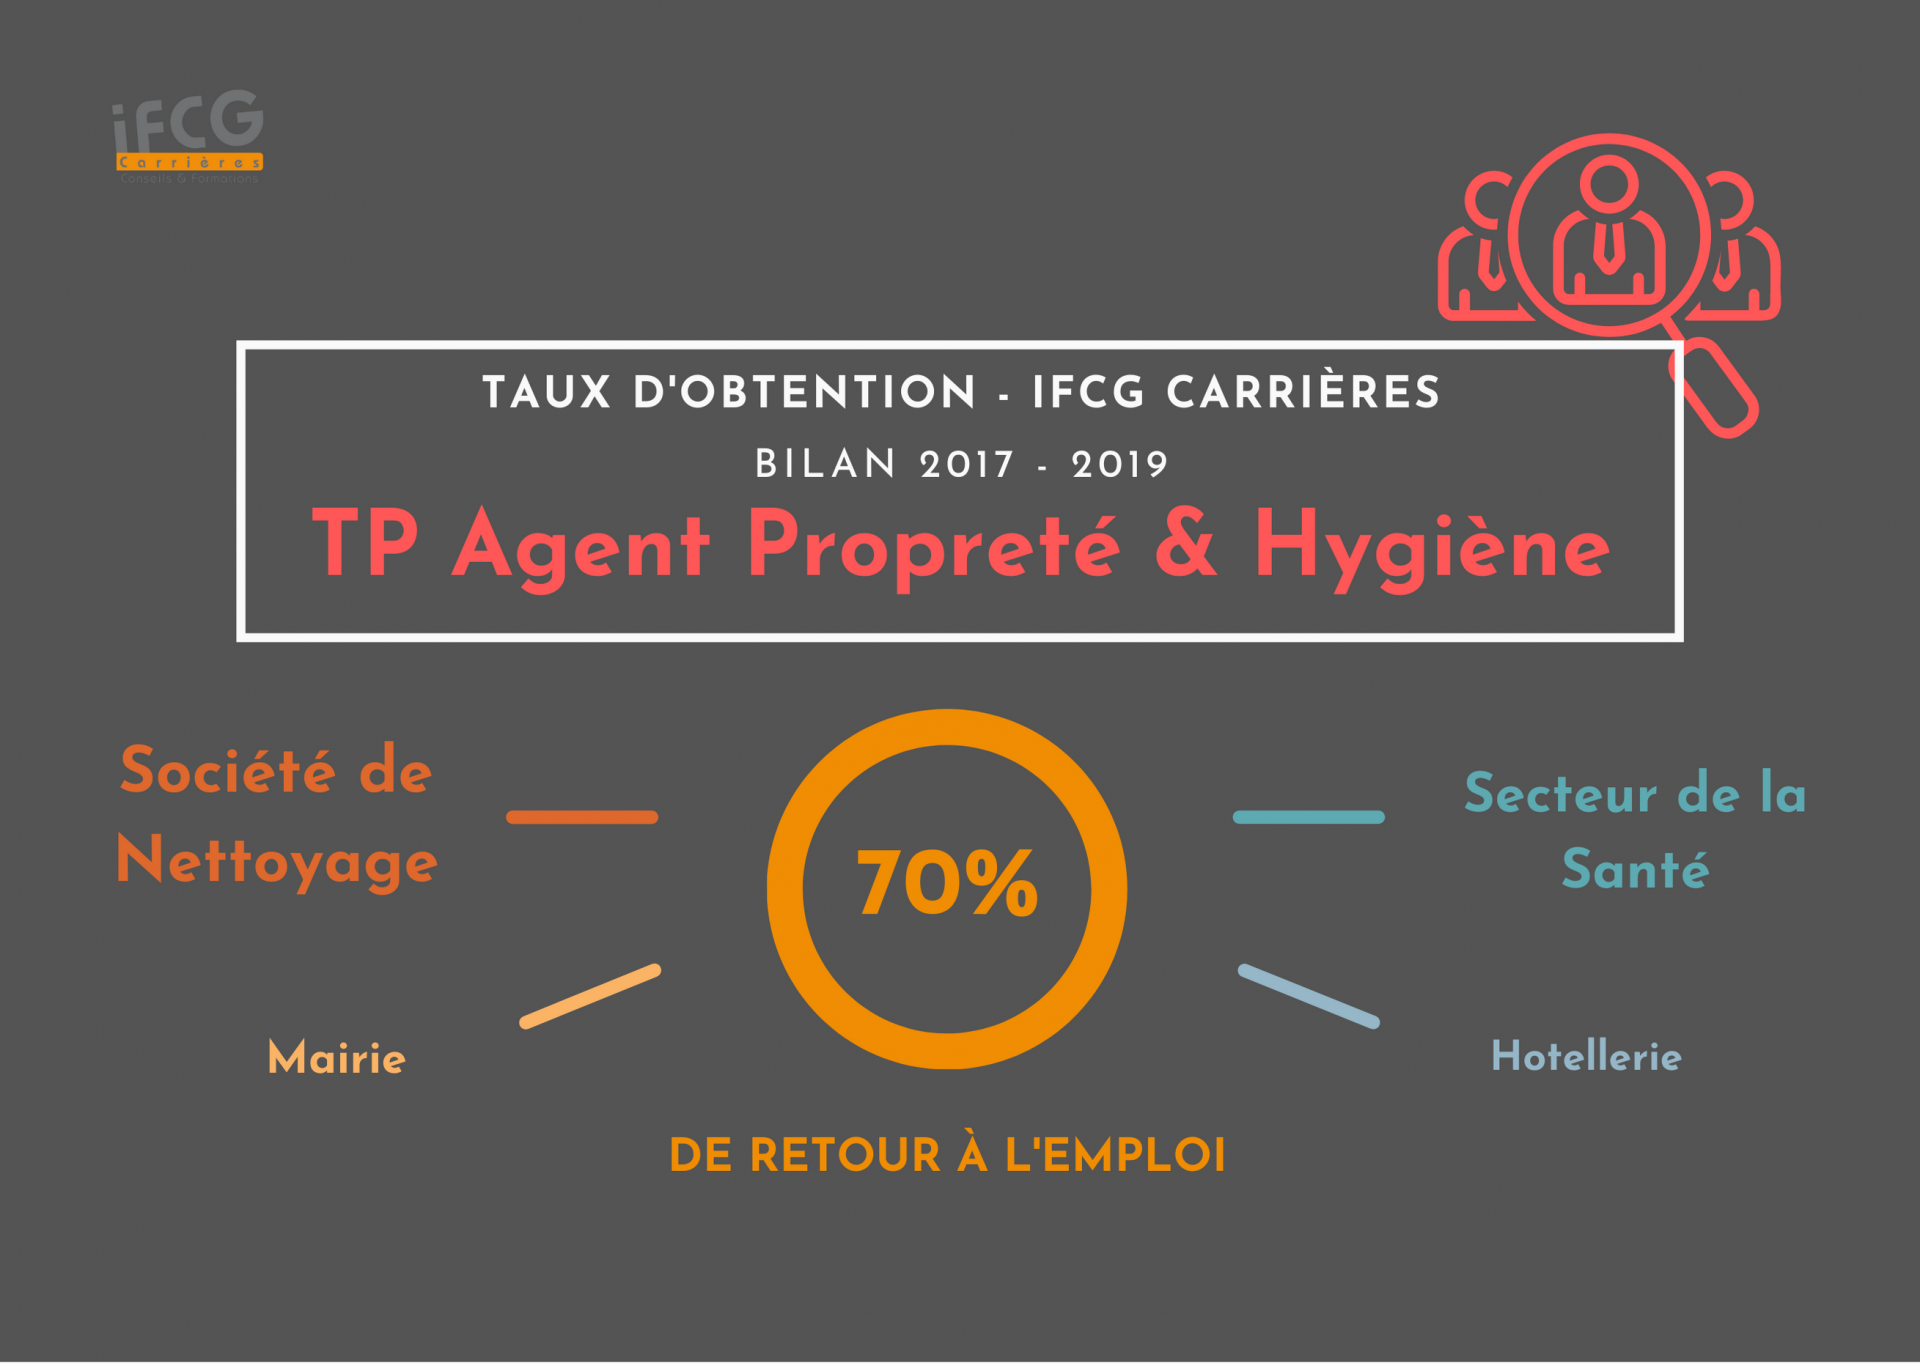 Bilan tauxd insertion tp aph ifcg carrie res 2017 2019